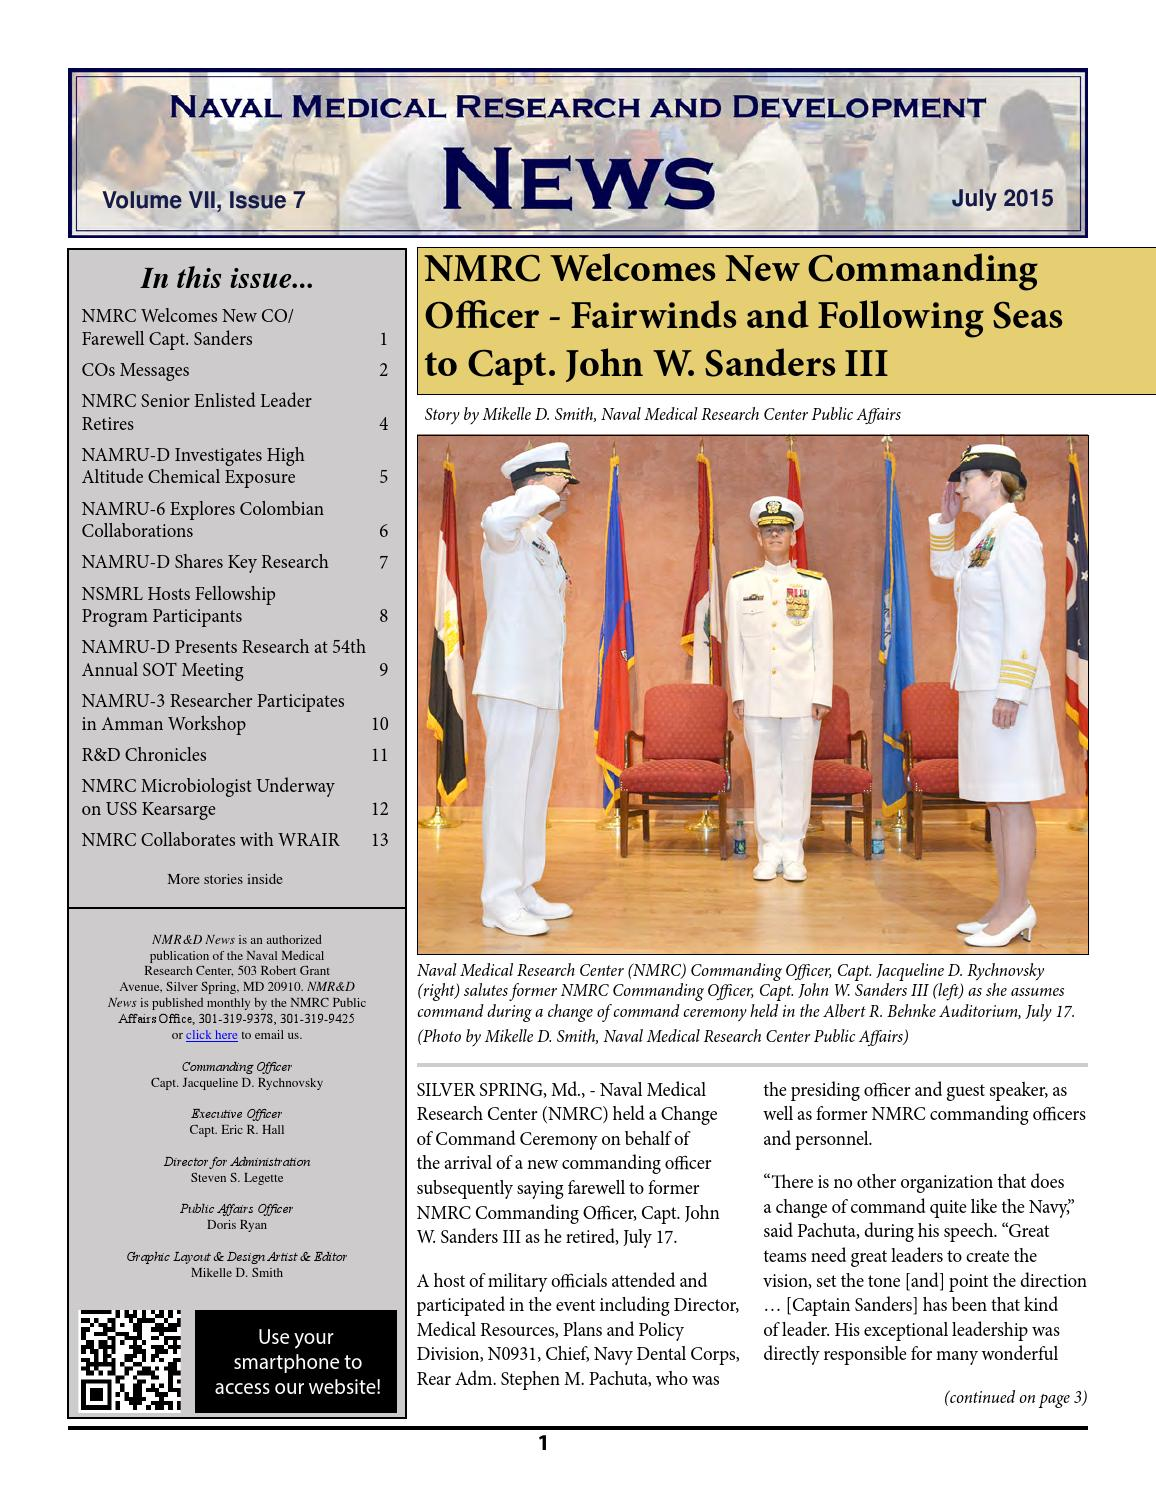 naval medical research center july 2015 newsletter by navy medicine